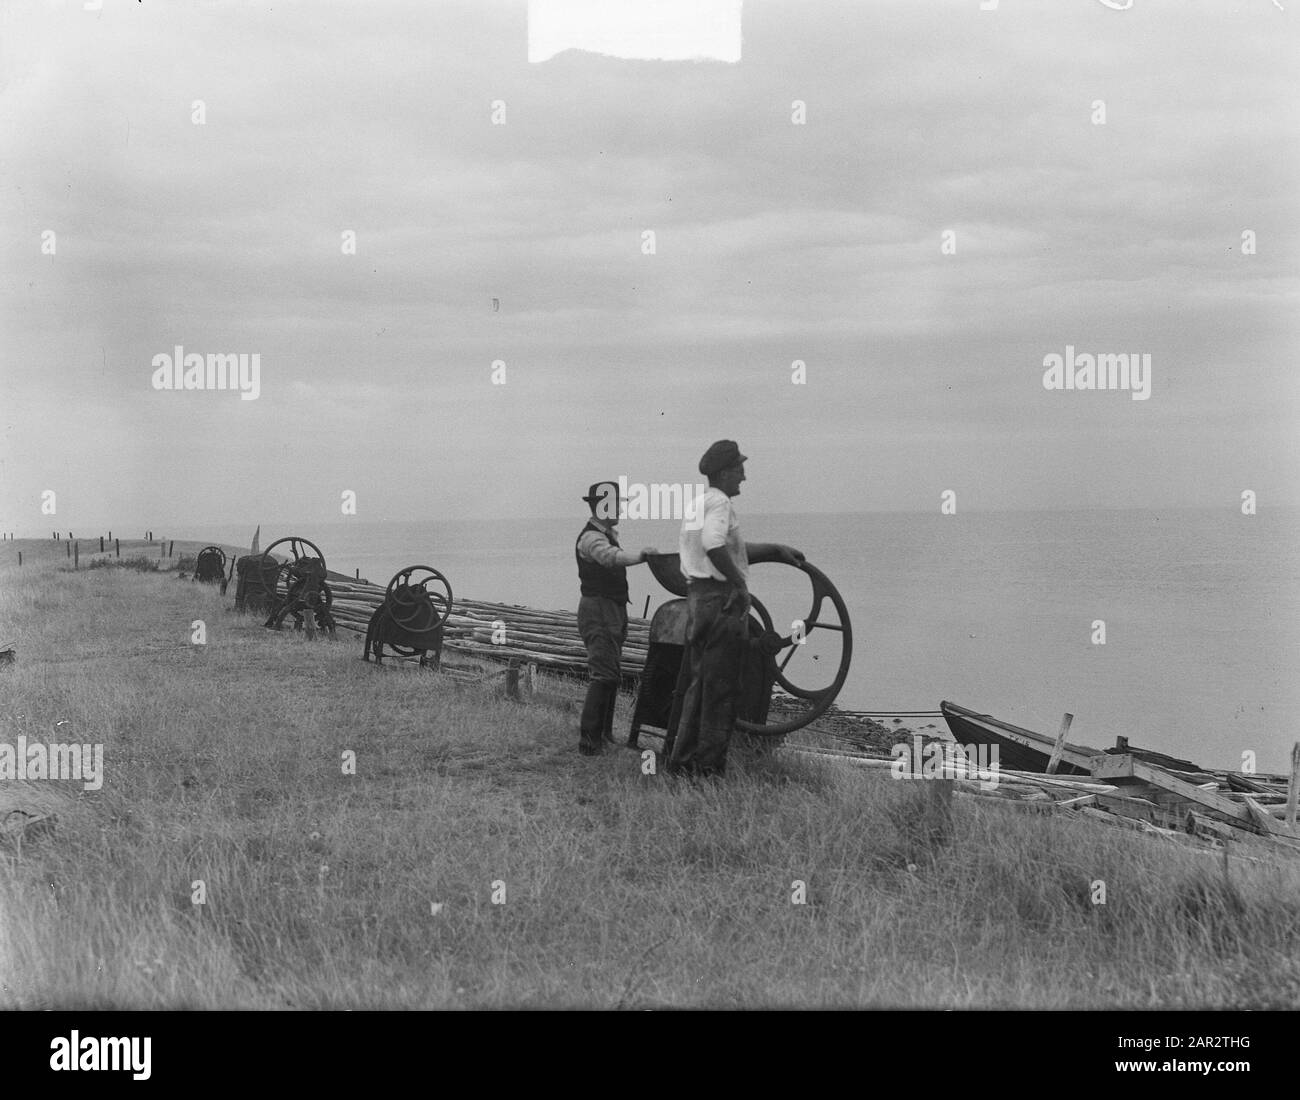 t Horntje on Texel is strengthened against the sea Date: August 10, 1950 Location: Noord-Holland, Texel Keywords: SEEEN Stock Photo